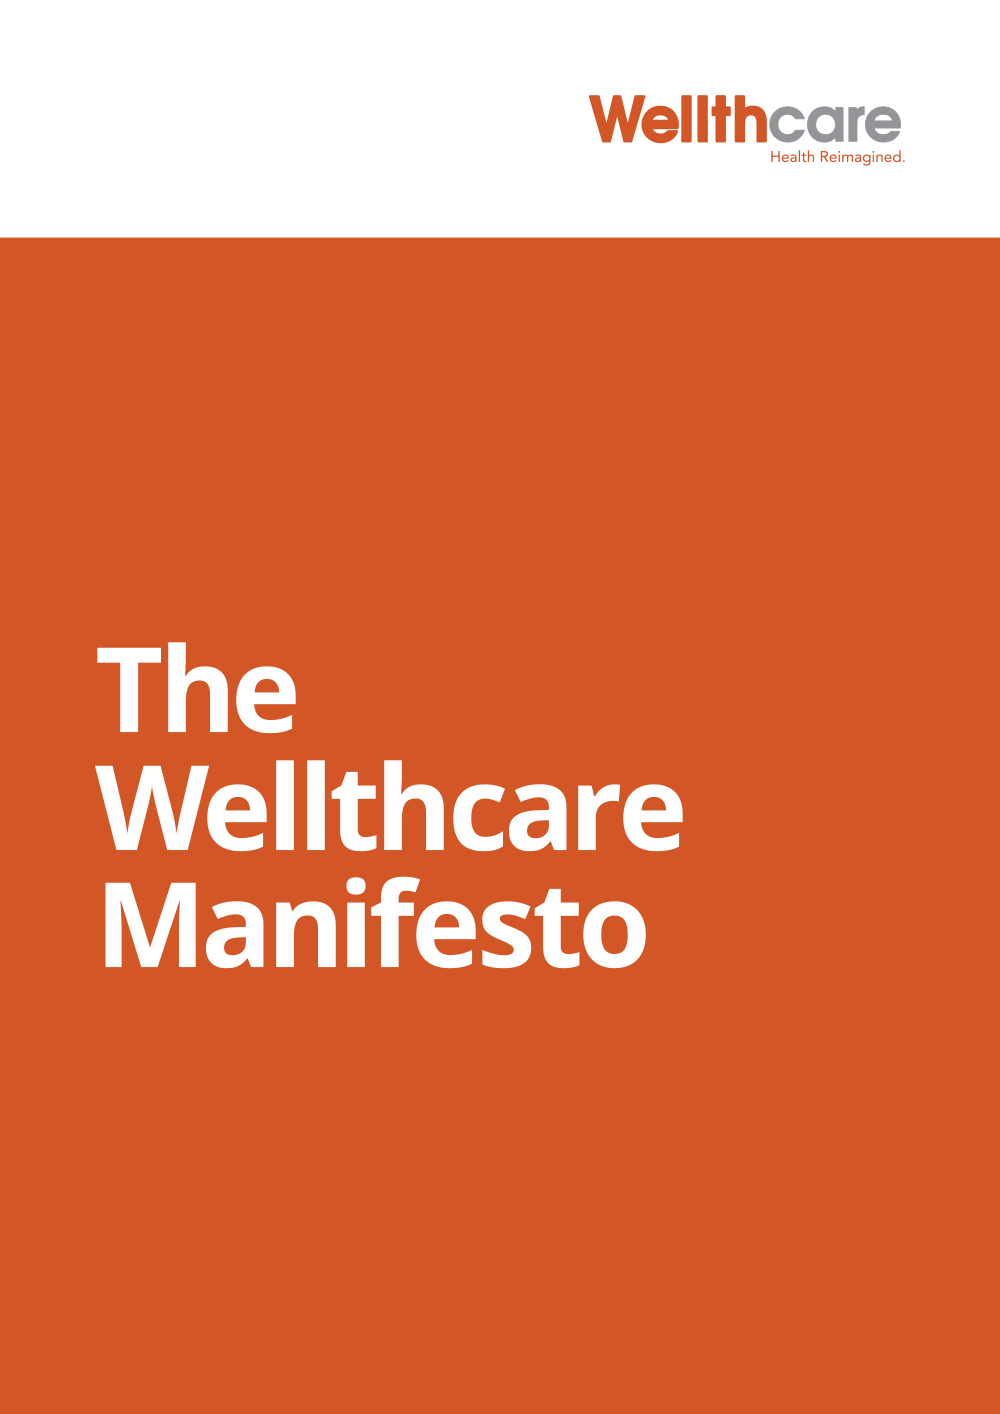 The_Wellthcare_Manifesto_01